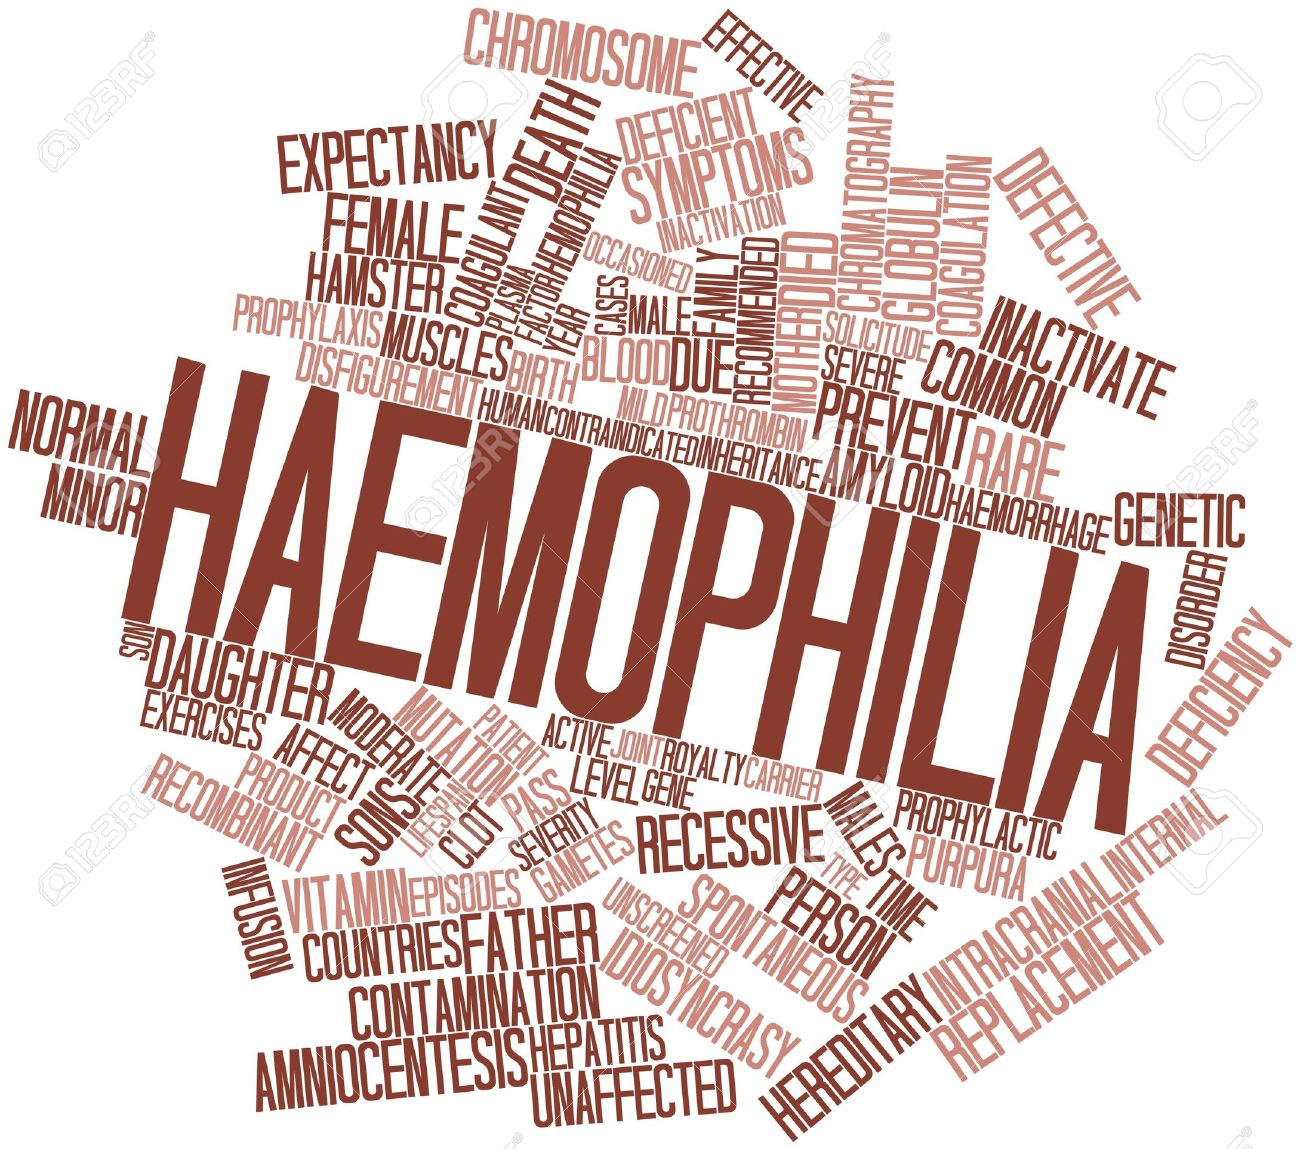 Medical Fieldwork - Haemophilia